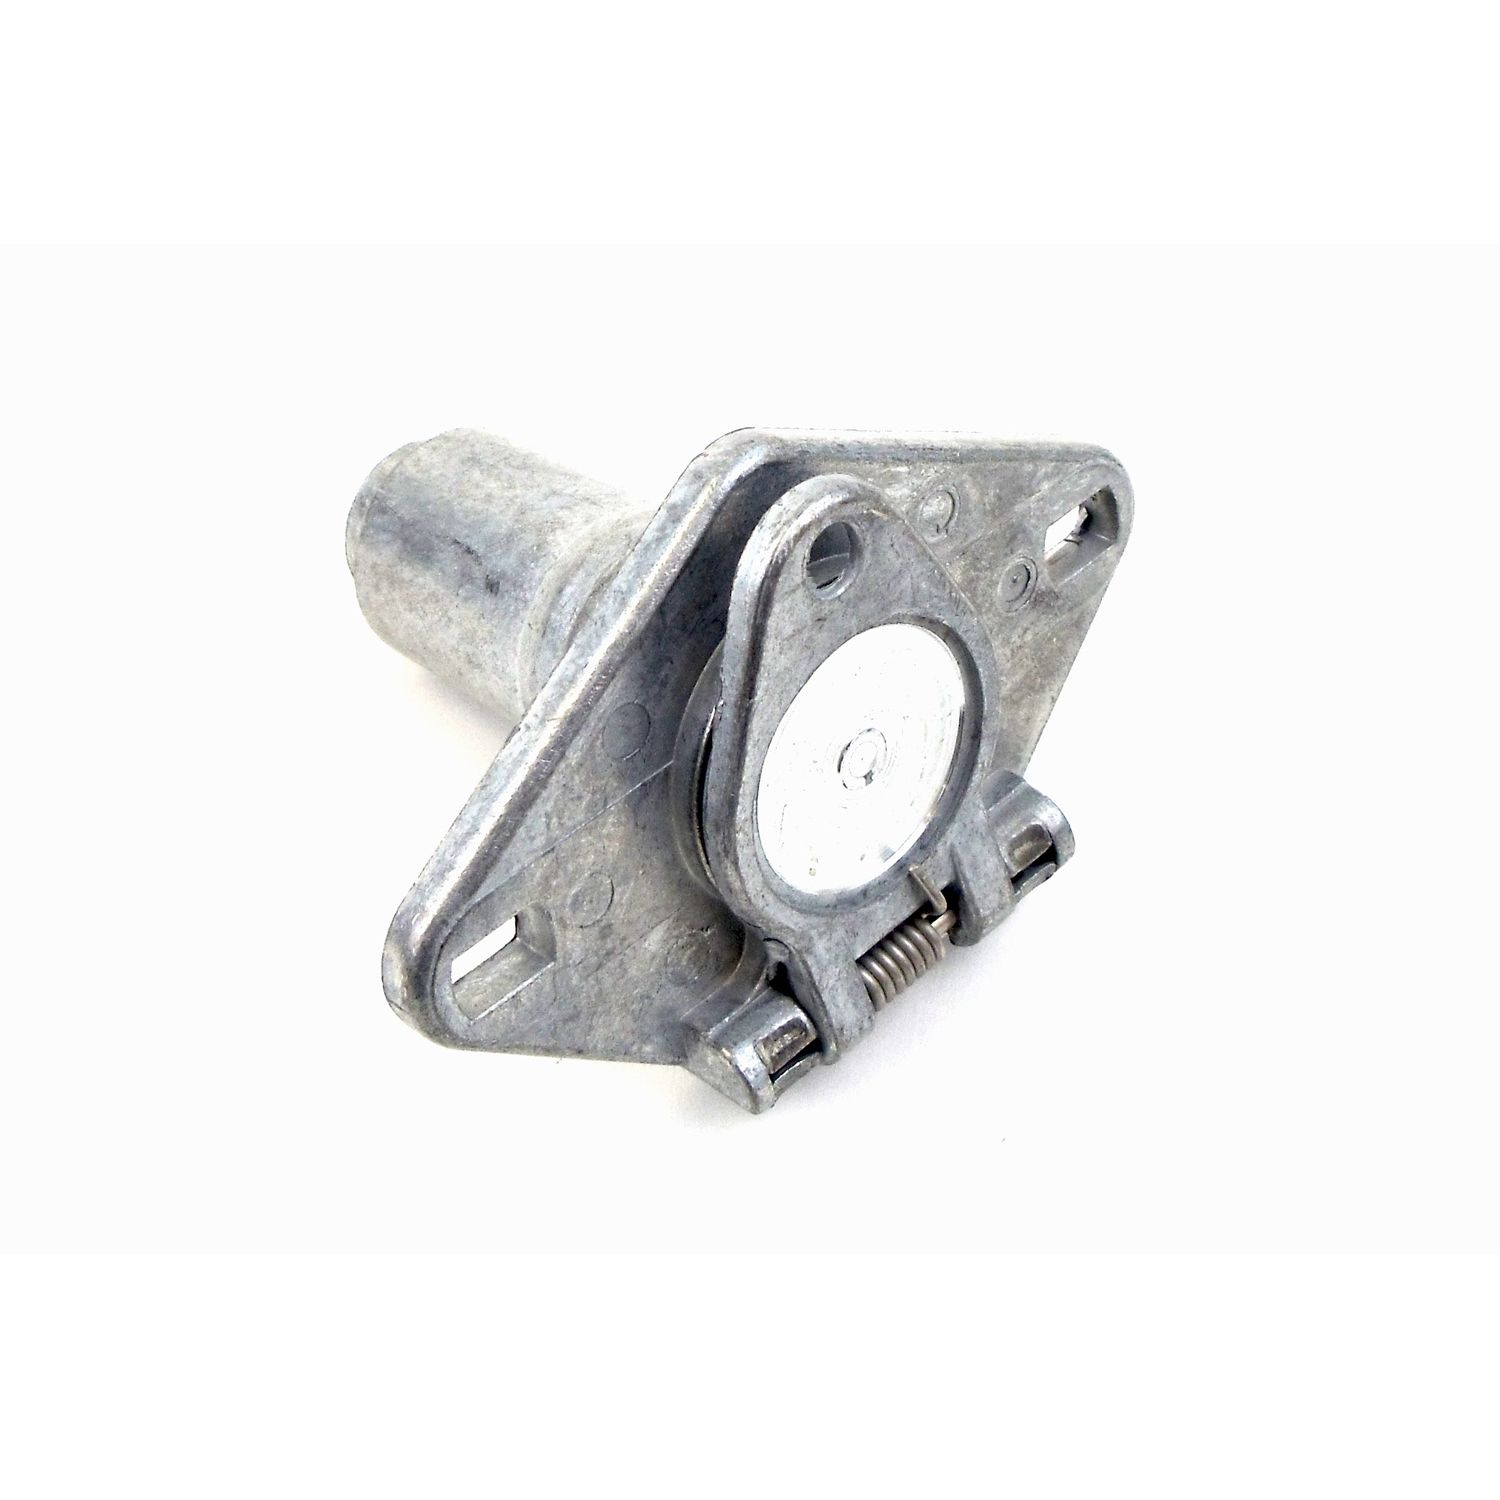 Clearance items :: 6-WAY TRAILER PLUG WITH SPRING LOADED COVER